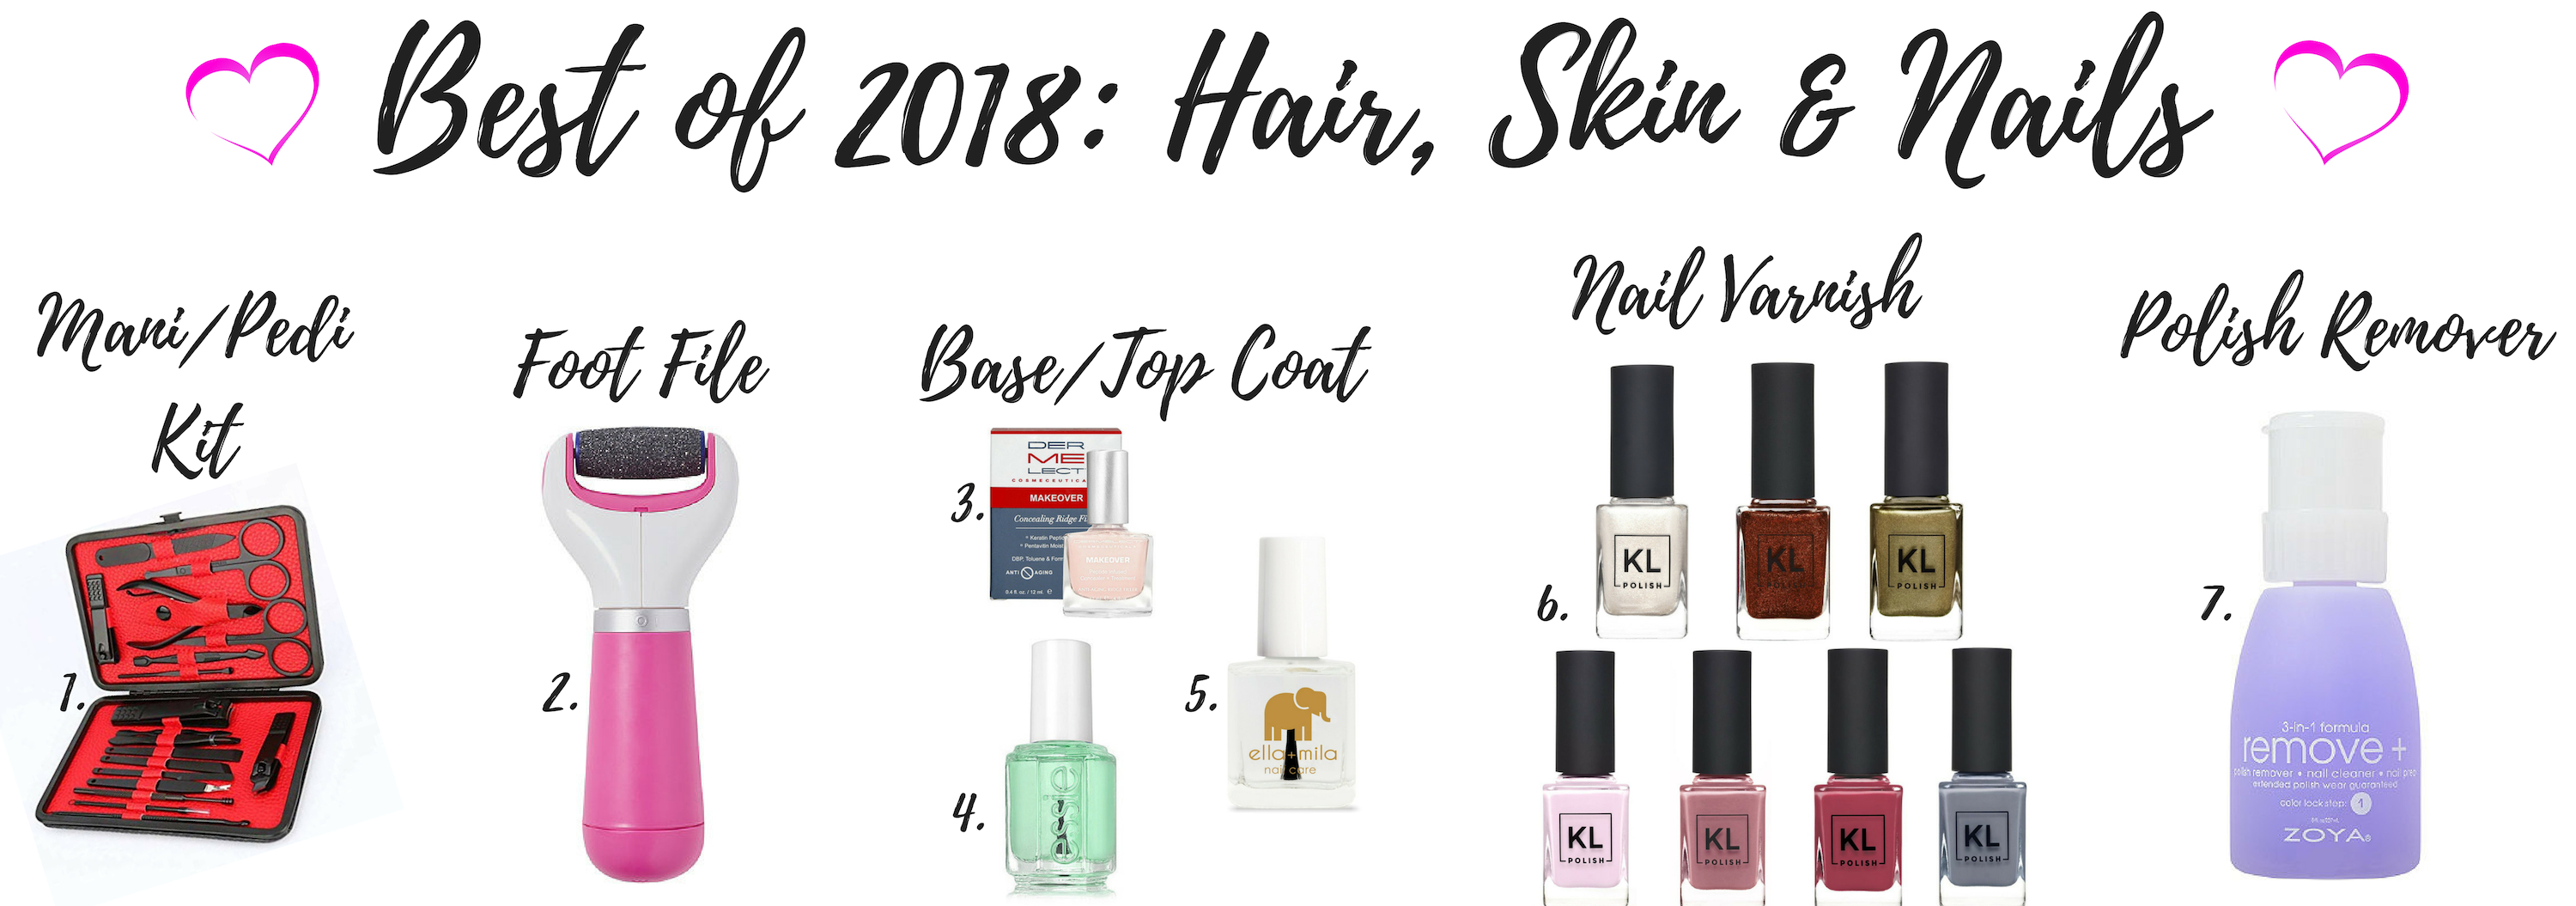 BEST OF 2018: HAIR, SKIN & NAILS